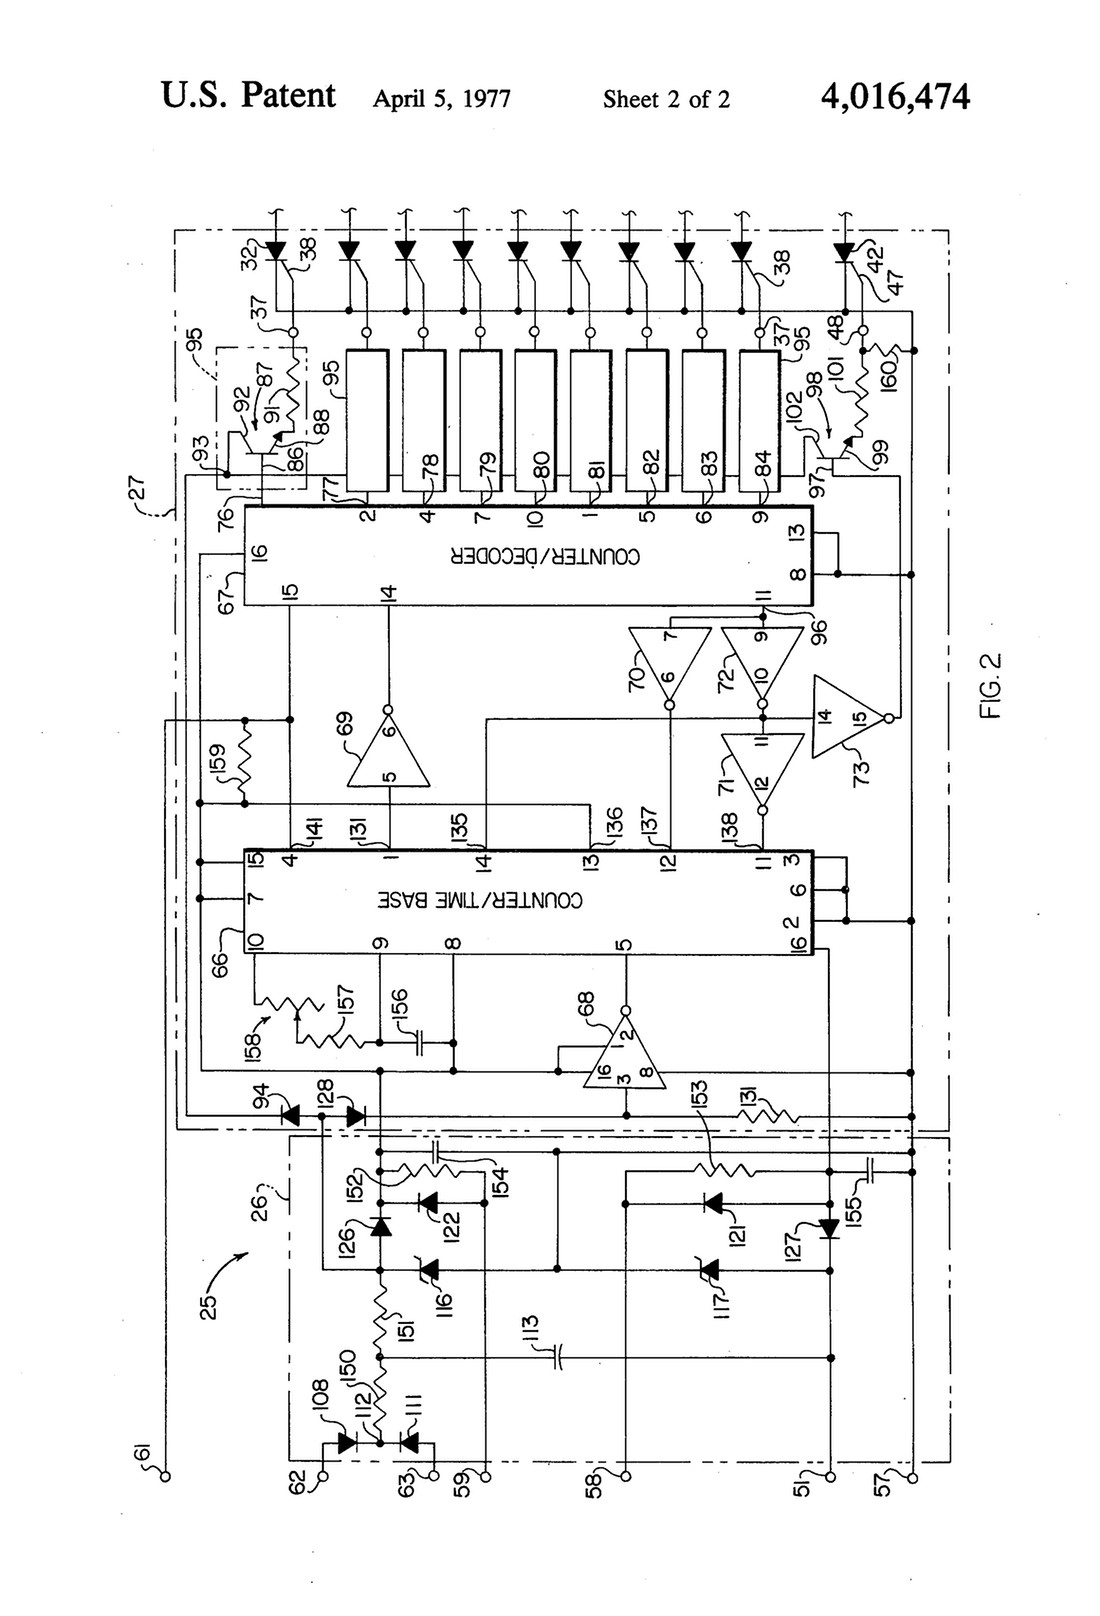 DIAGRAM] Wiring Diagram Battery Charger 45005 FULL Version HD Quality Charger  45005 - RADICALSCHEMATIC.COTIDIANUL.IT radicalschematic.cotidianul.it